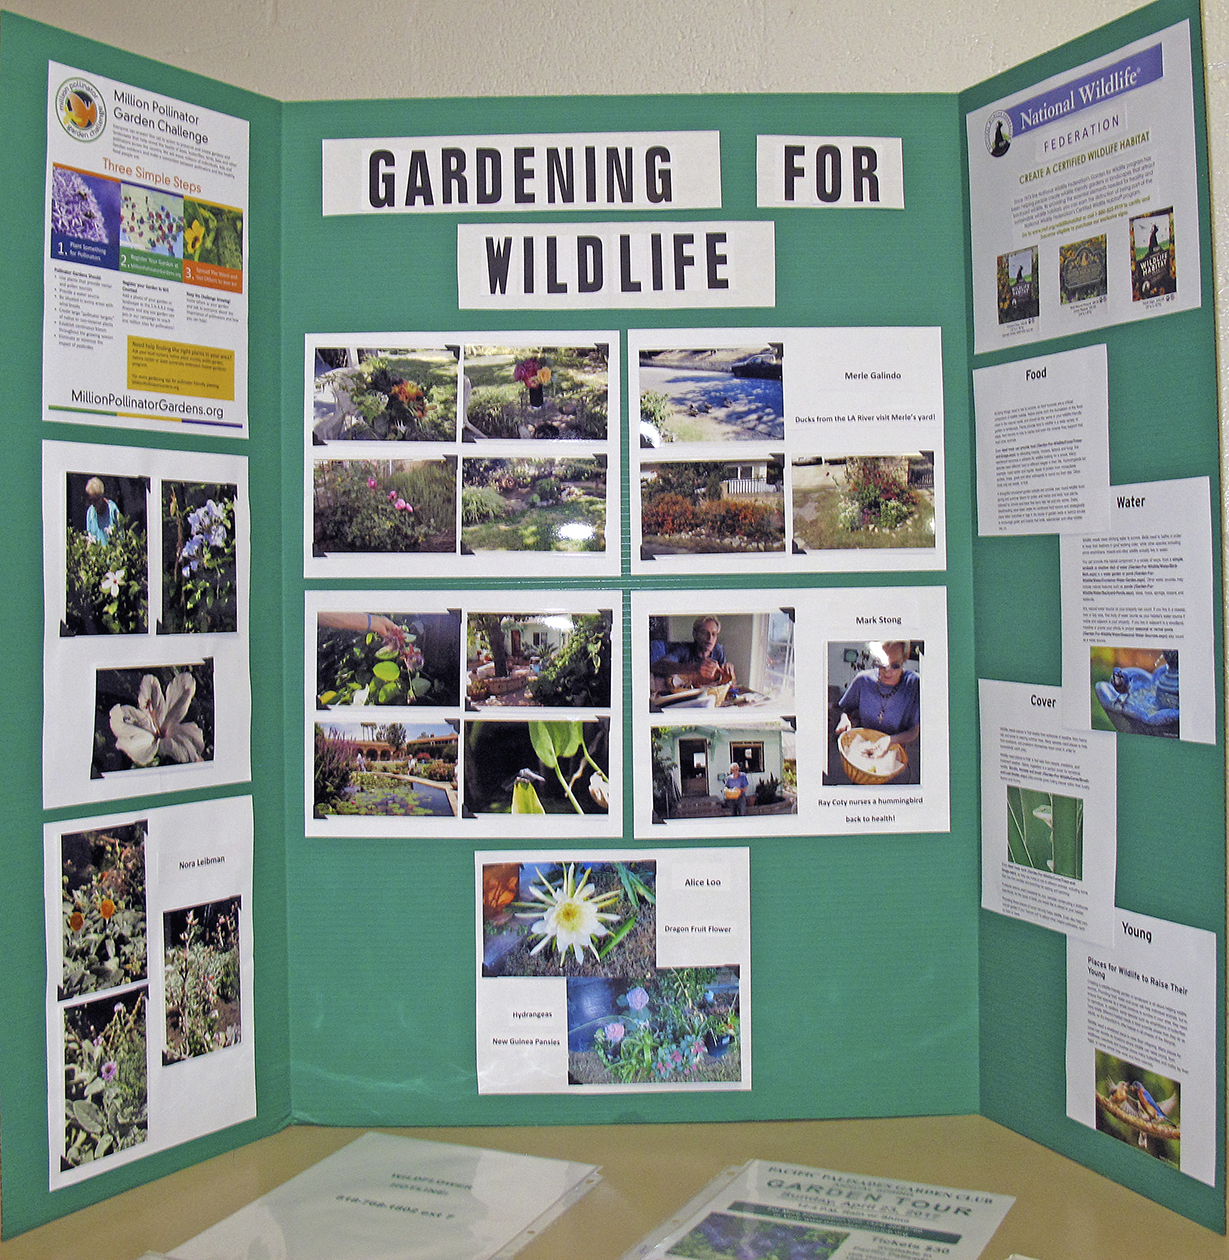 LAGC Gardening for Wildlife